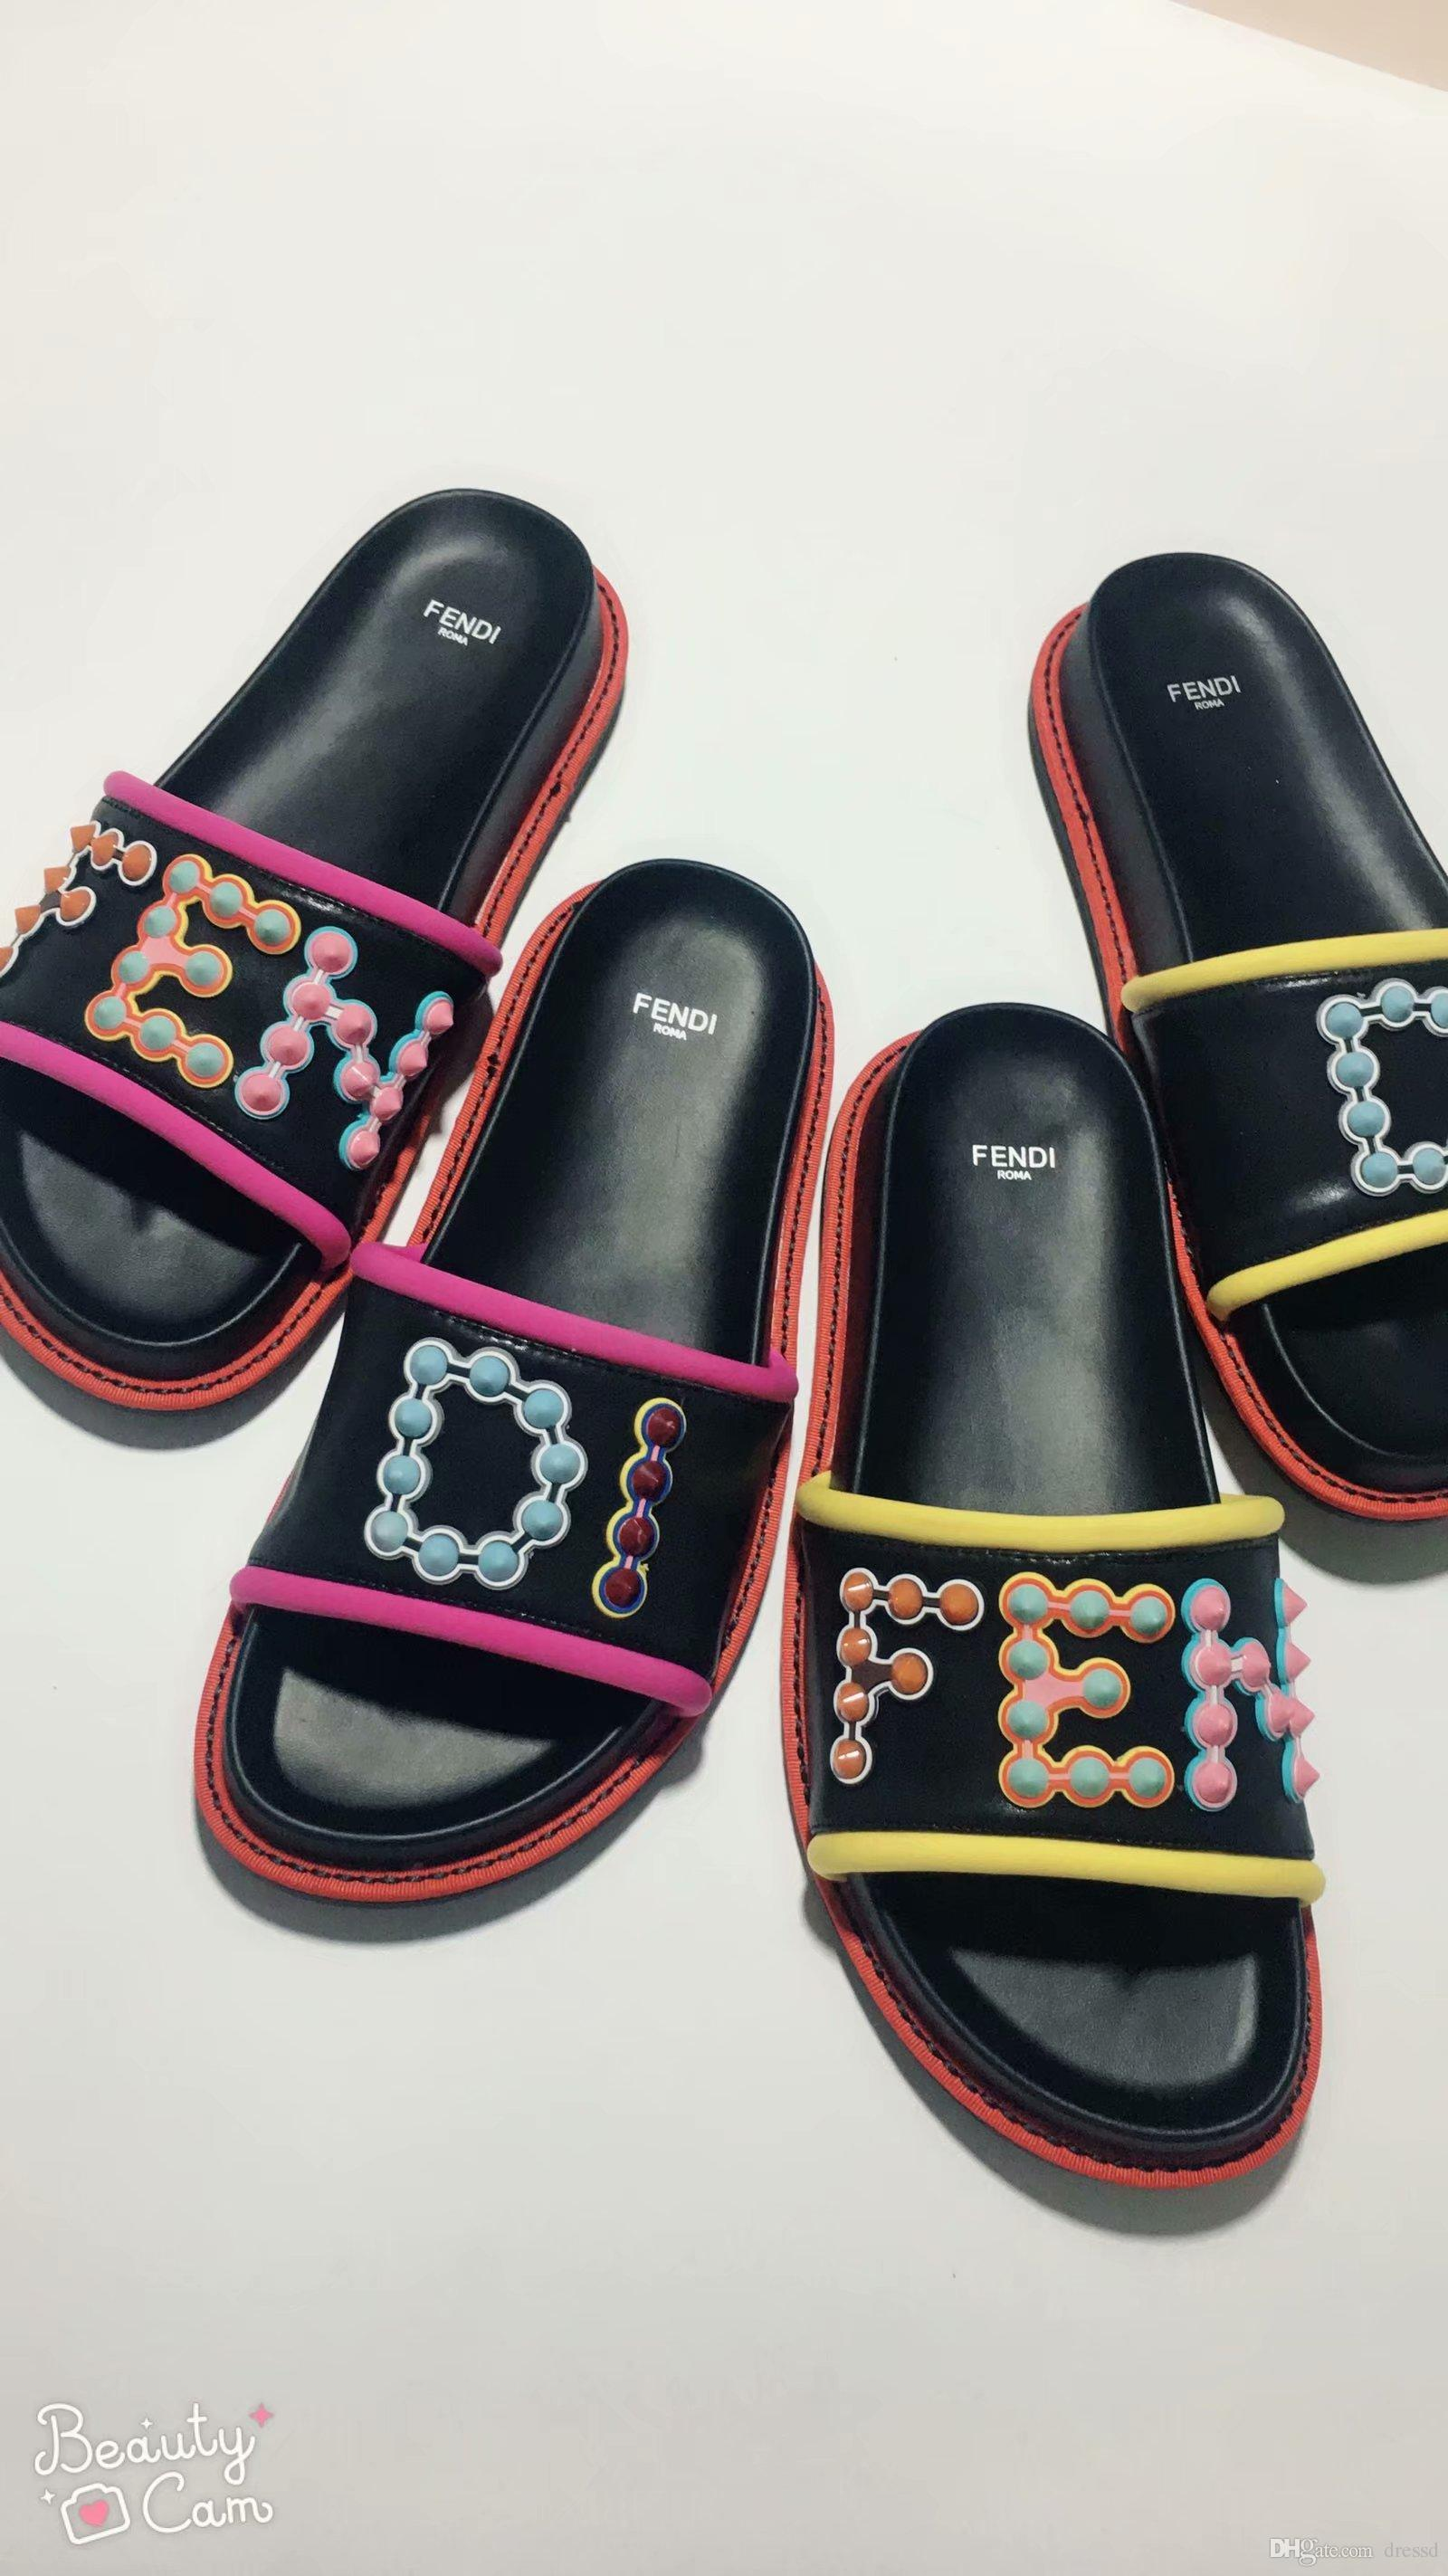 2019 new arrival mens and womens fun fair studded logo Slides sandals girls boys street fashion flat slippers 35-45